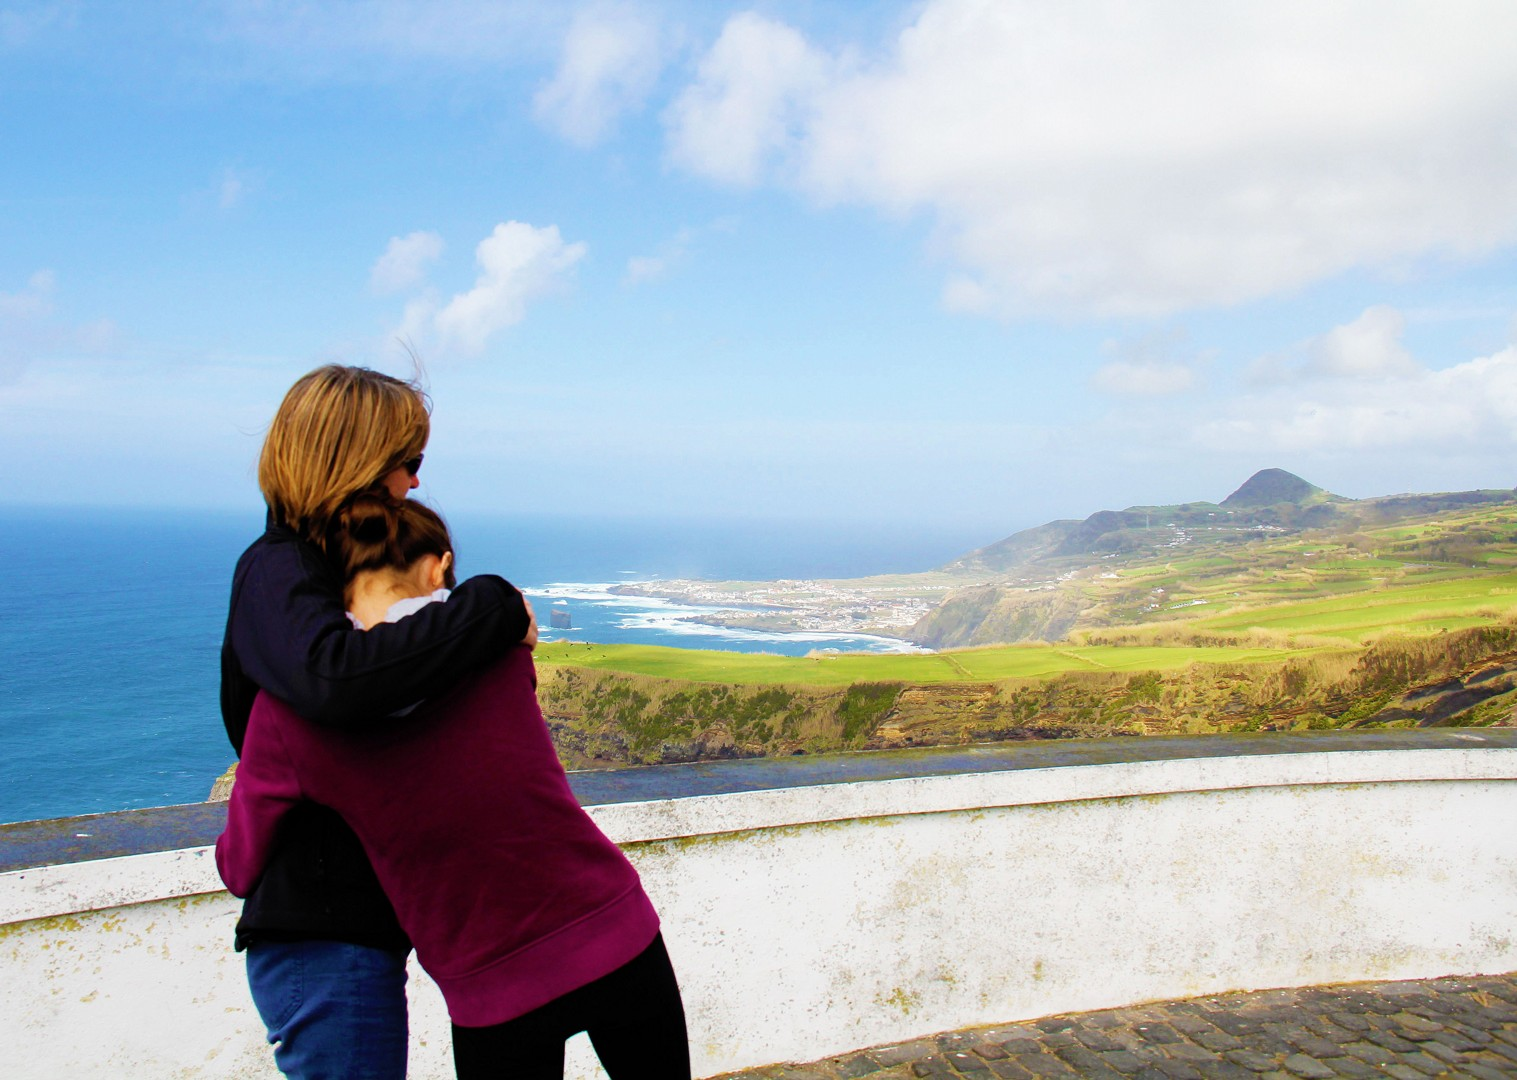 family-holiday-in-azores-cycling-trip.jpg - The Azores - Island Discoverer - Family Cycling